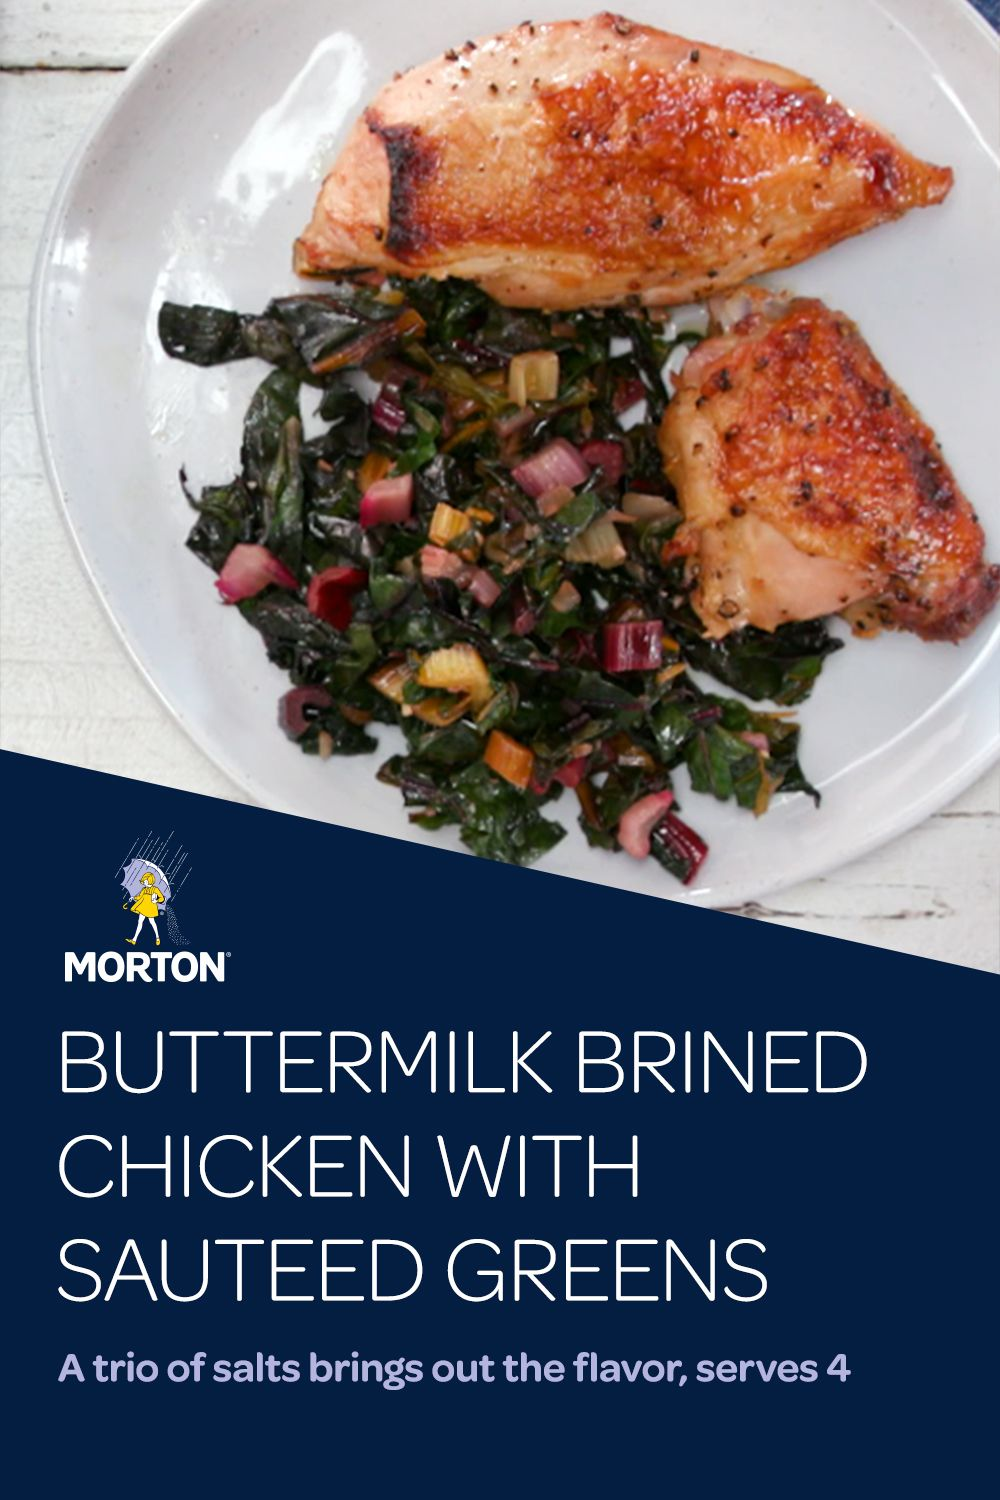 Buttermilk Brined Chicken With Sauteed Greens Yummy Chicken Recipes Chicken Recipes Chicken Dinner